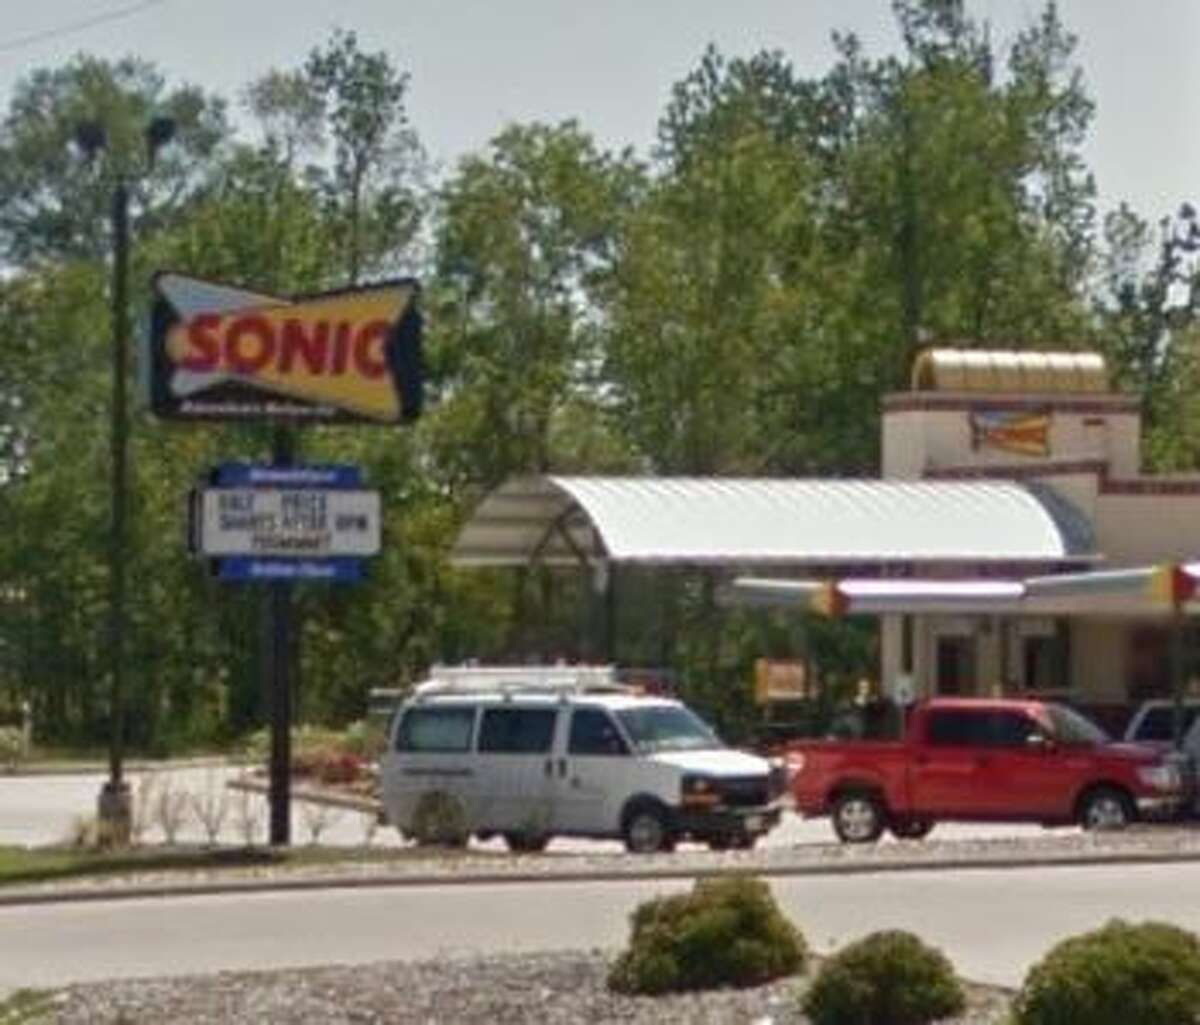 Sonic 370 East Highway 105 Score: 97 Violations: Dirty can opener, dirty monitors and poles, dirty drain grate.